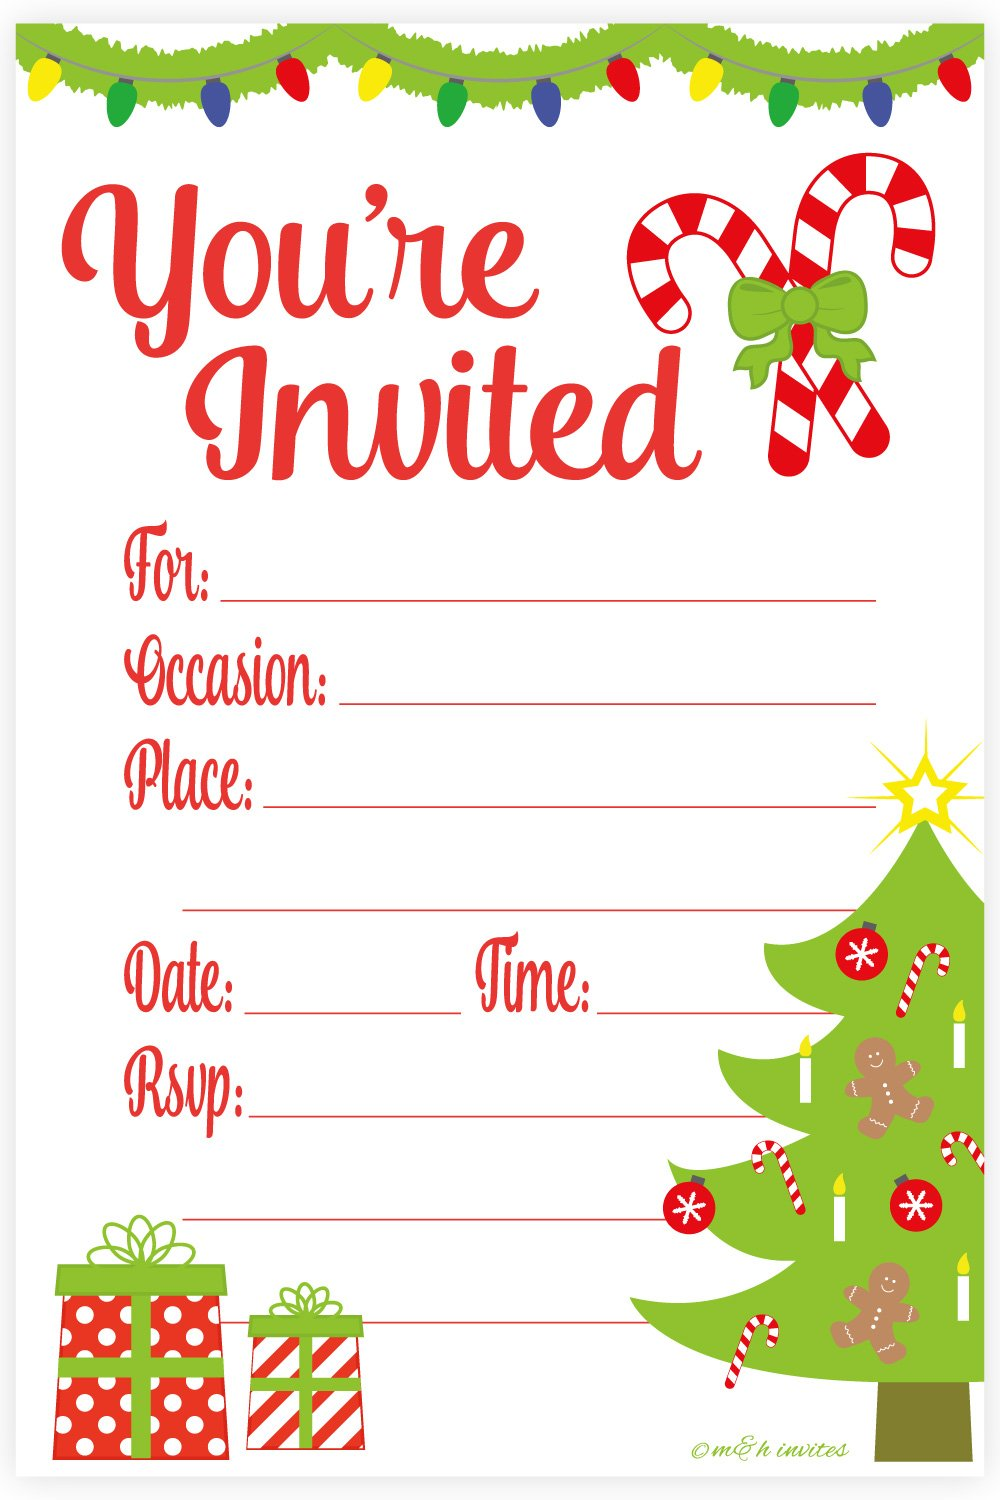 Amazon.com: Festive Christmas Party Invitations - Fill In Style (20 ...